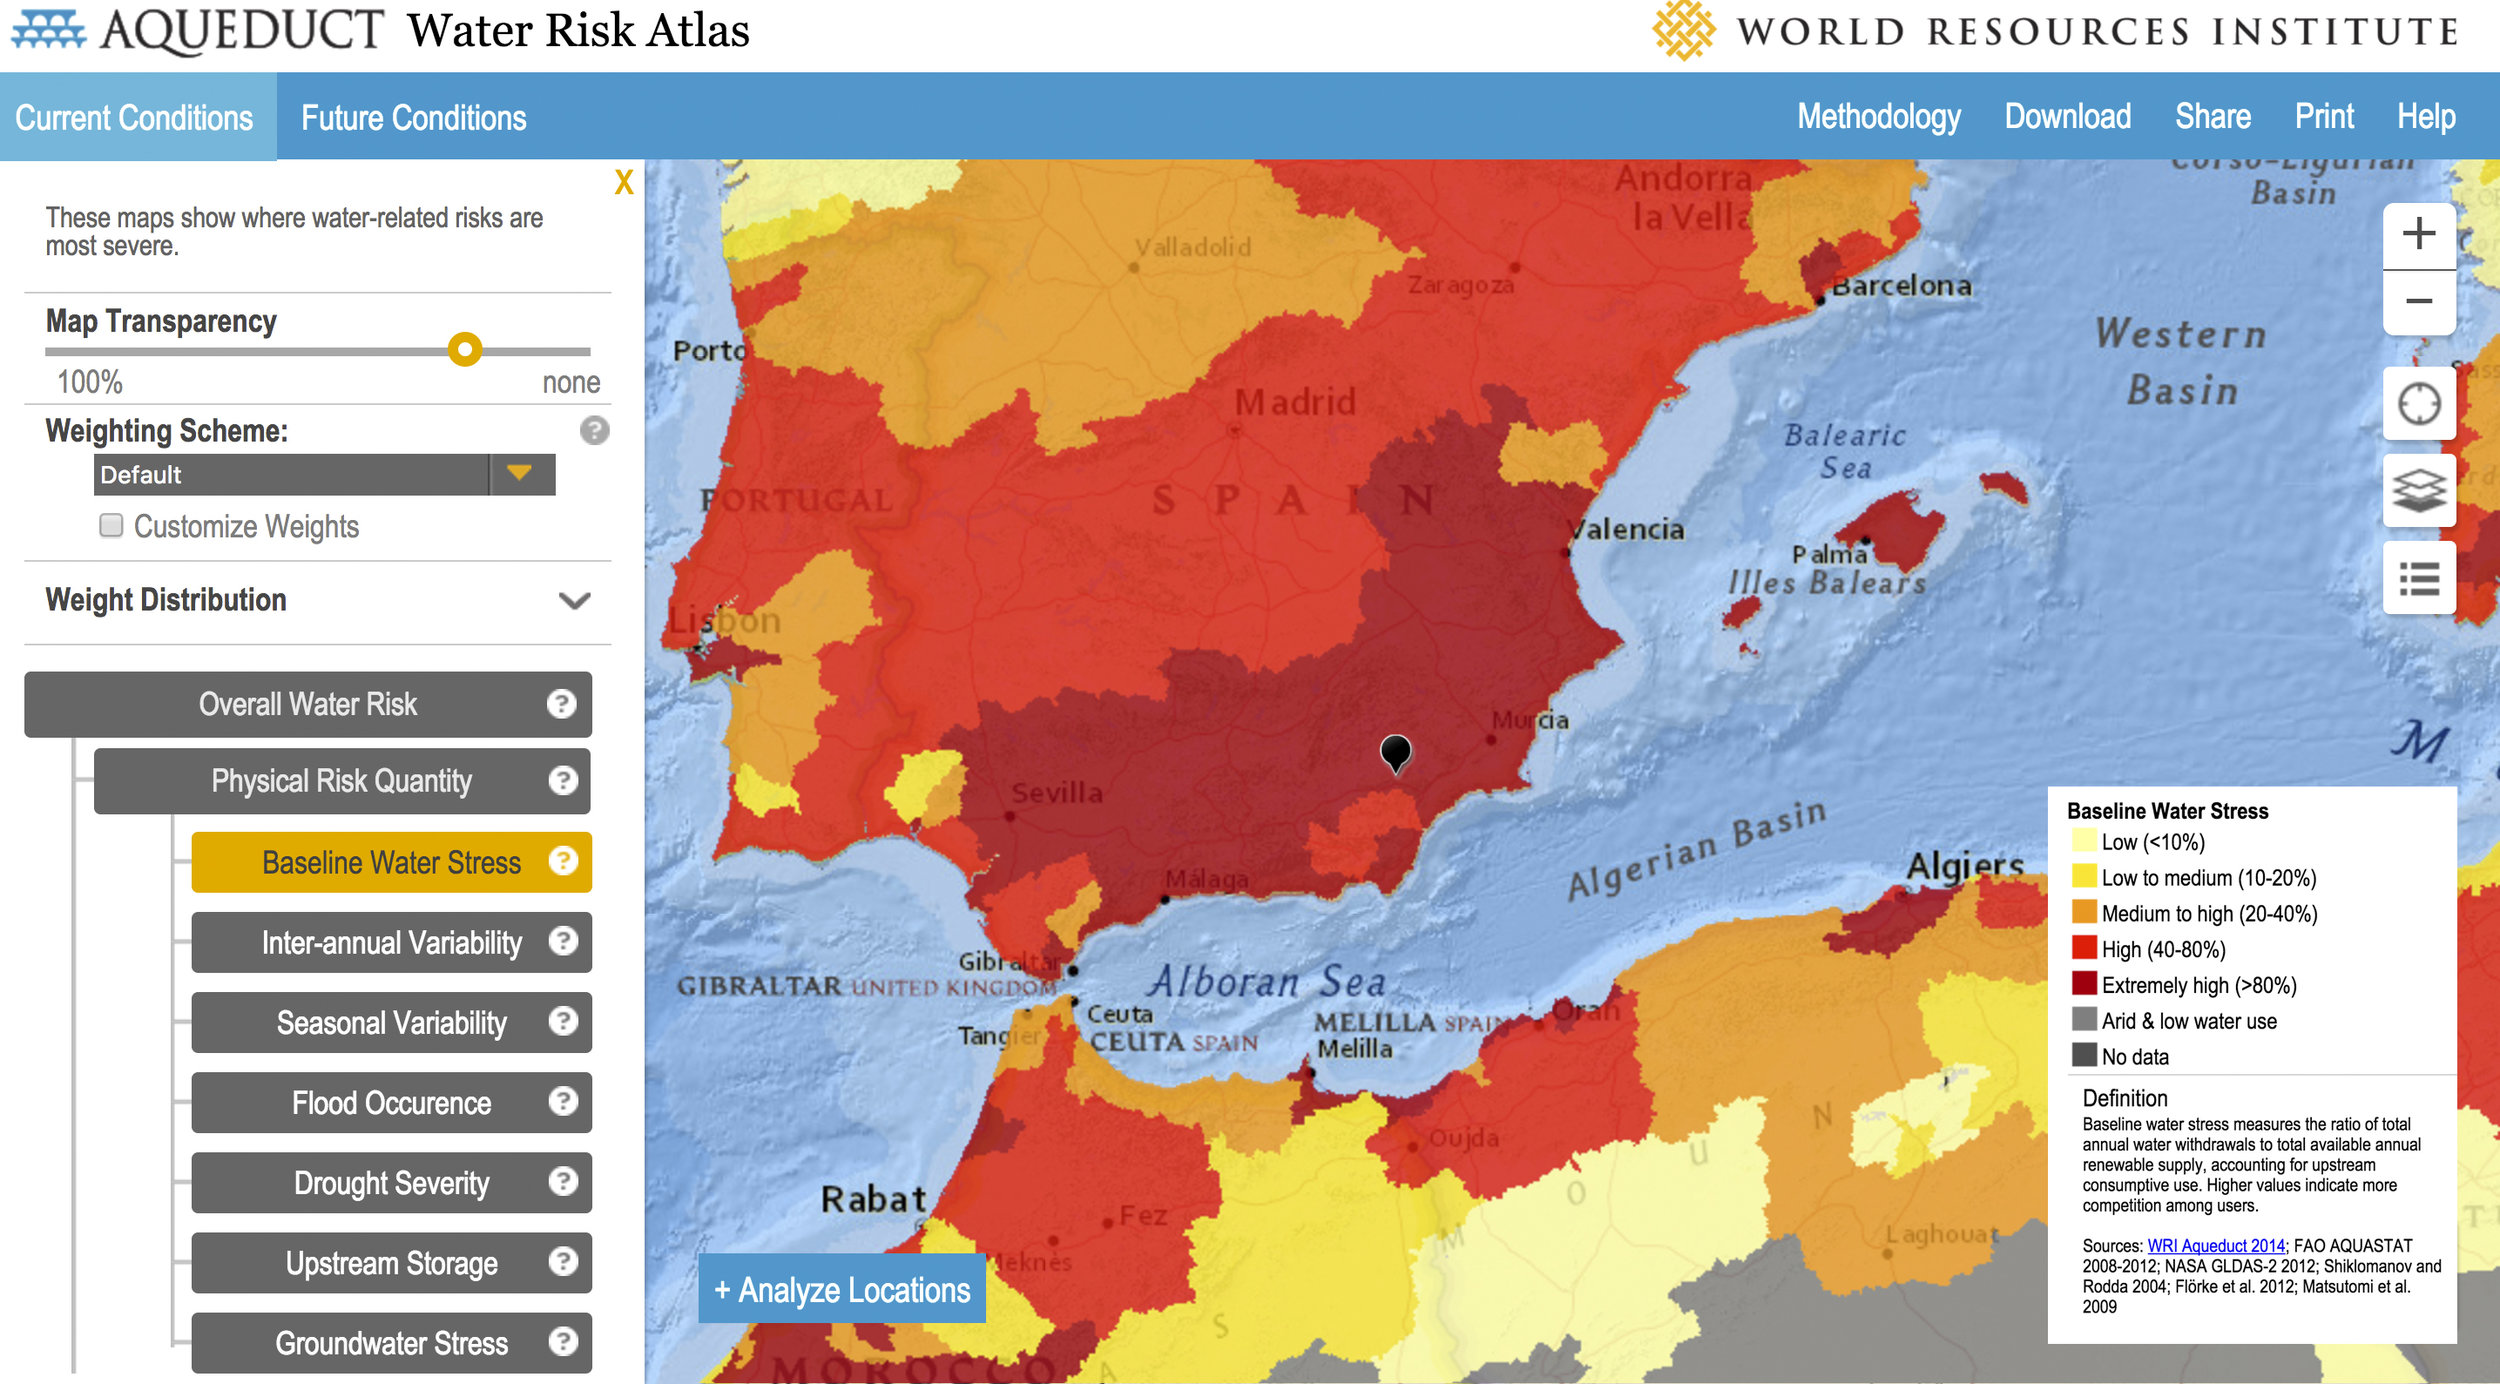 Baseline water stress measure of Spain and parts of north-west Africa. Location of Joya is shown by black marker.  Source: Aqueduct Water Risk Atlas , World Resources Institute .